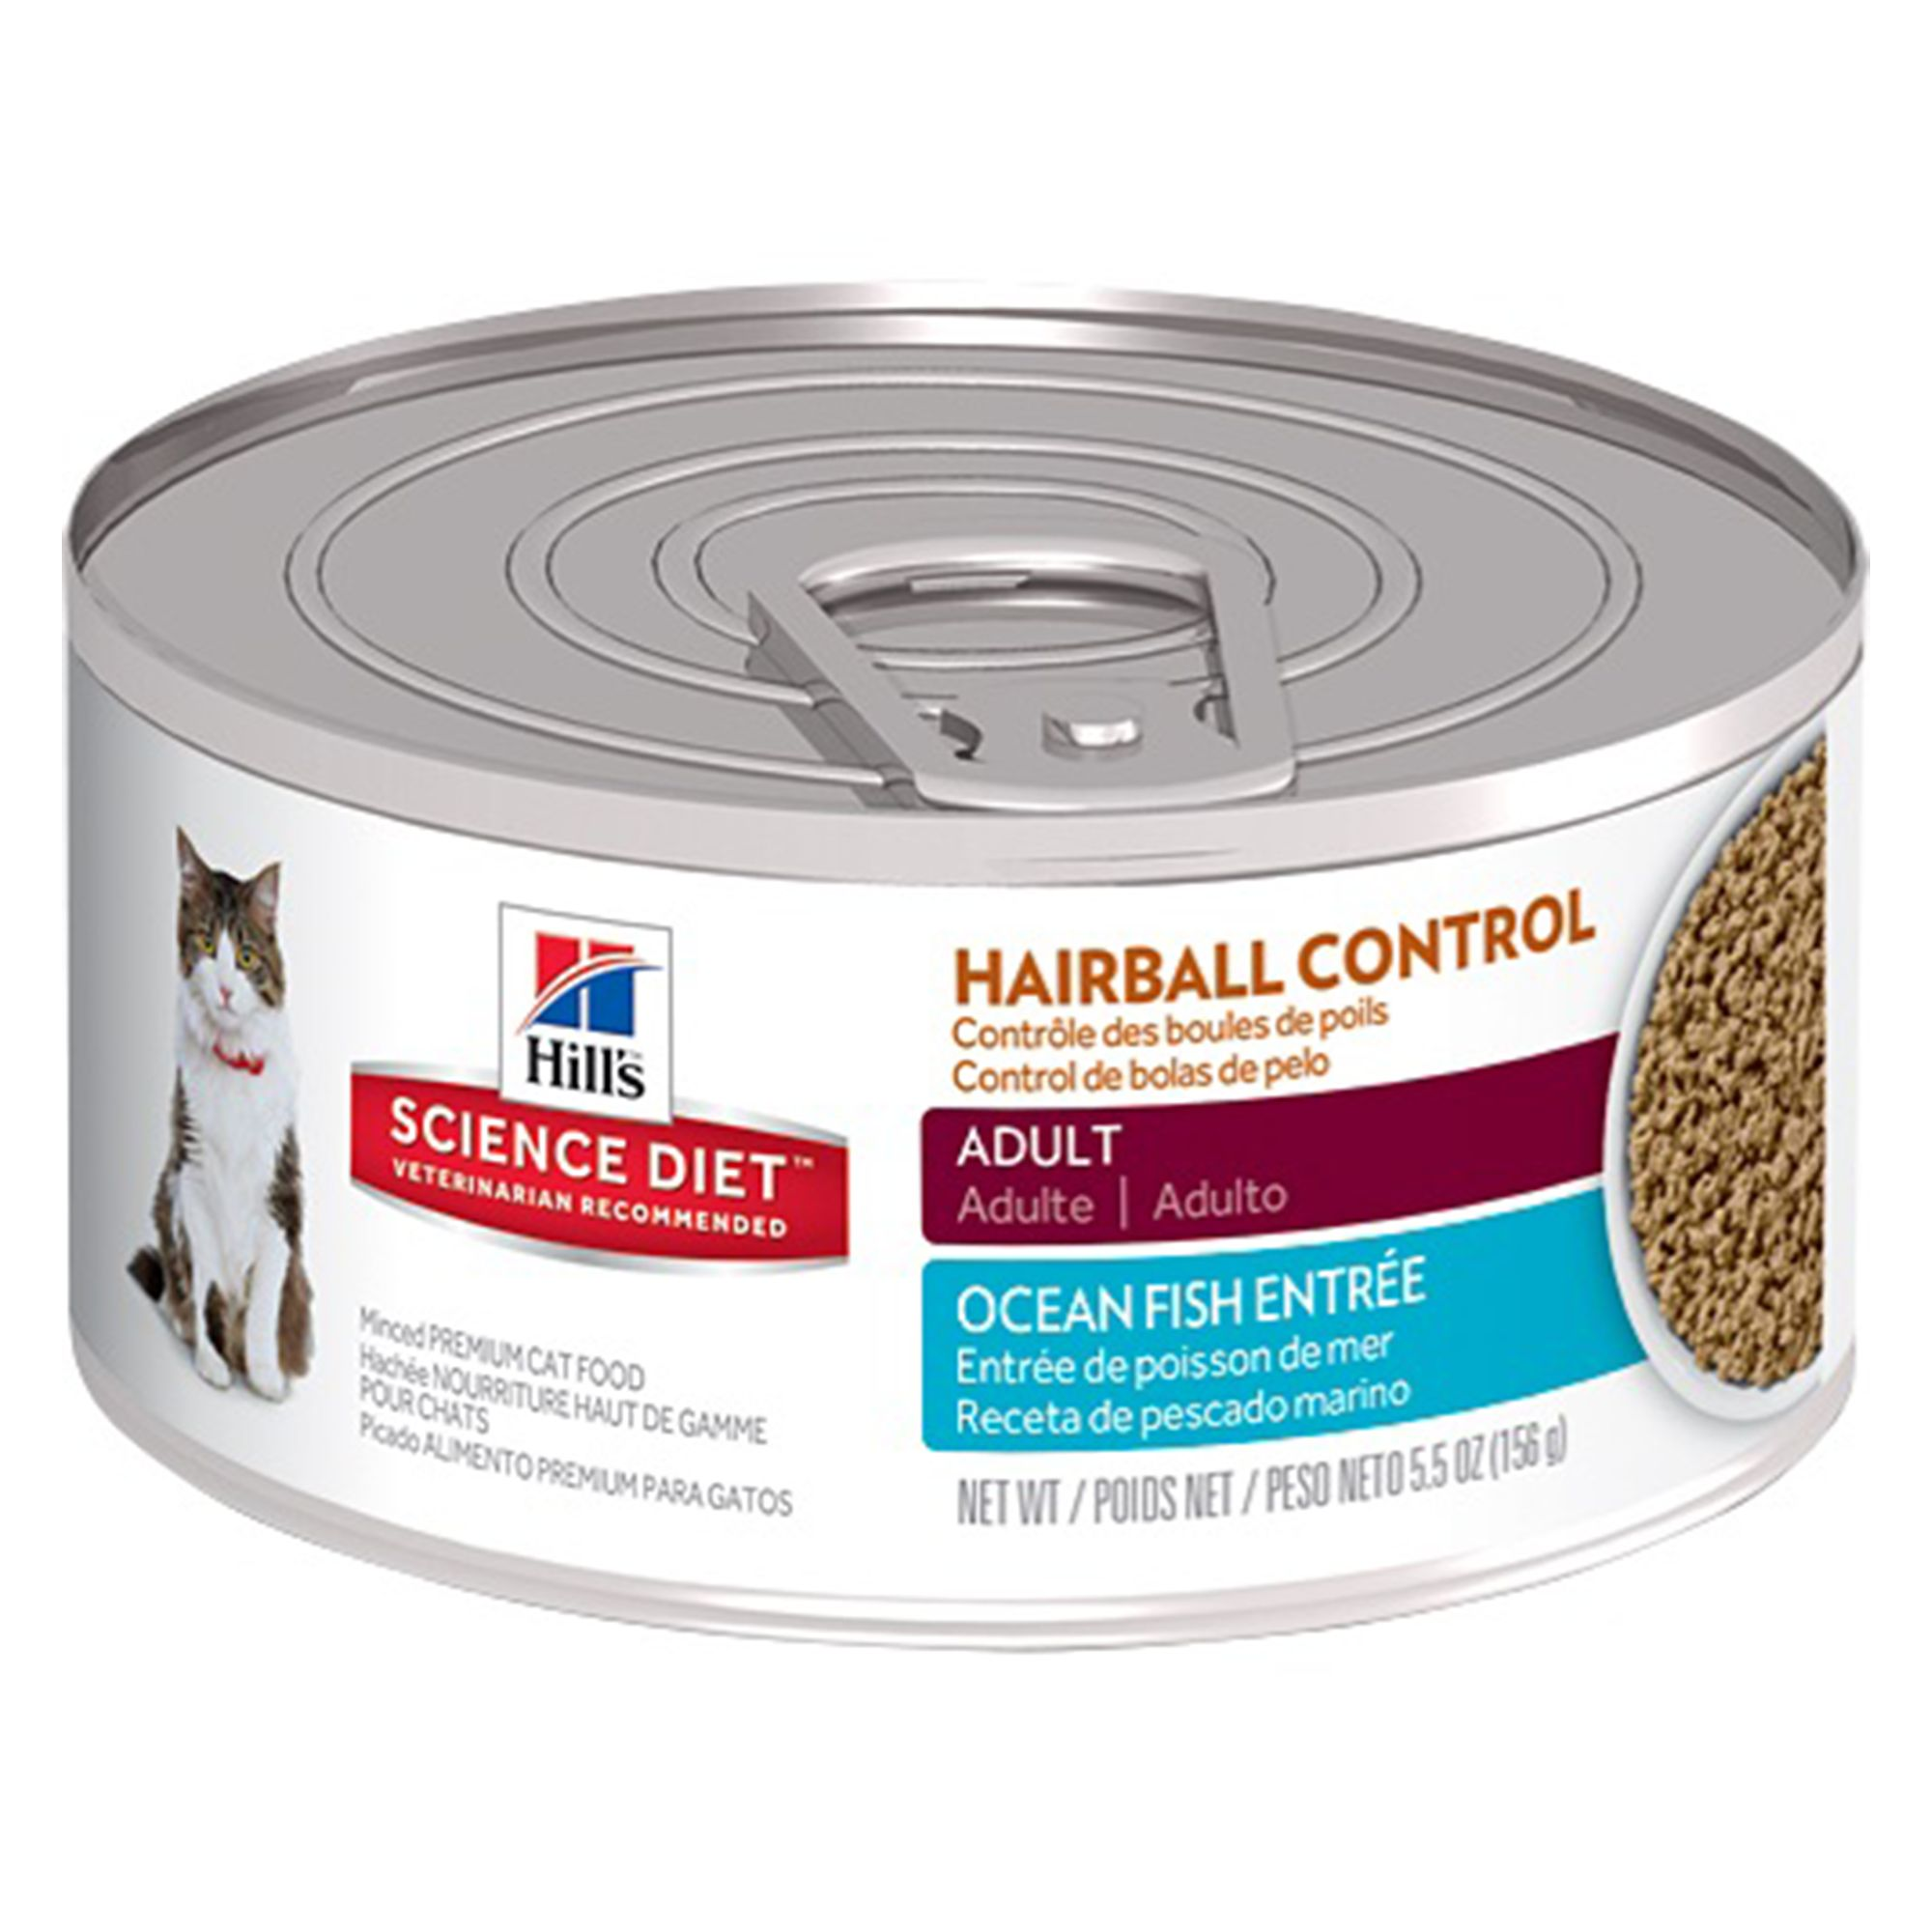 Hill S Science Diet Hairball Control Adult Cat Food Size 5 5 Oz Seafood 1 10 Yrs Water Hills Science Diet Science Diet